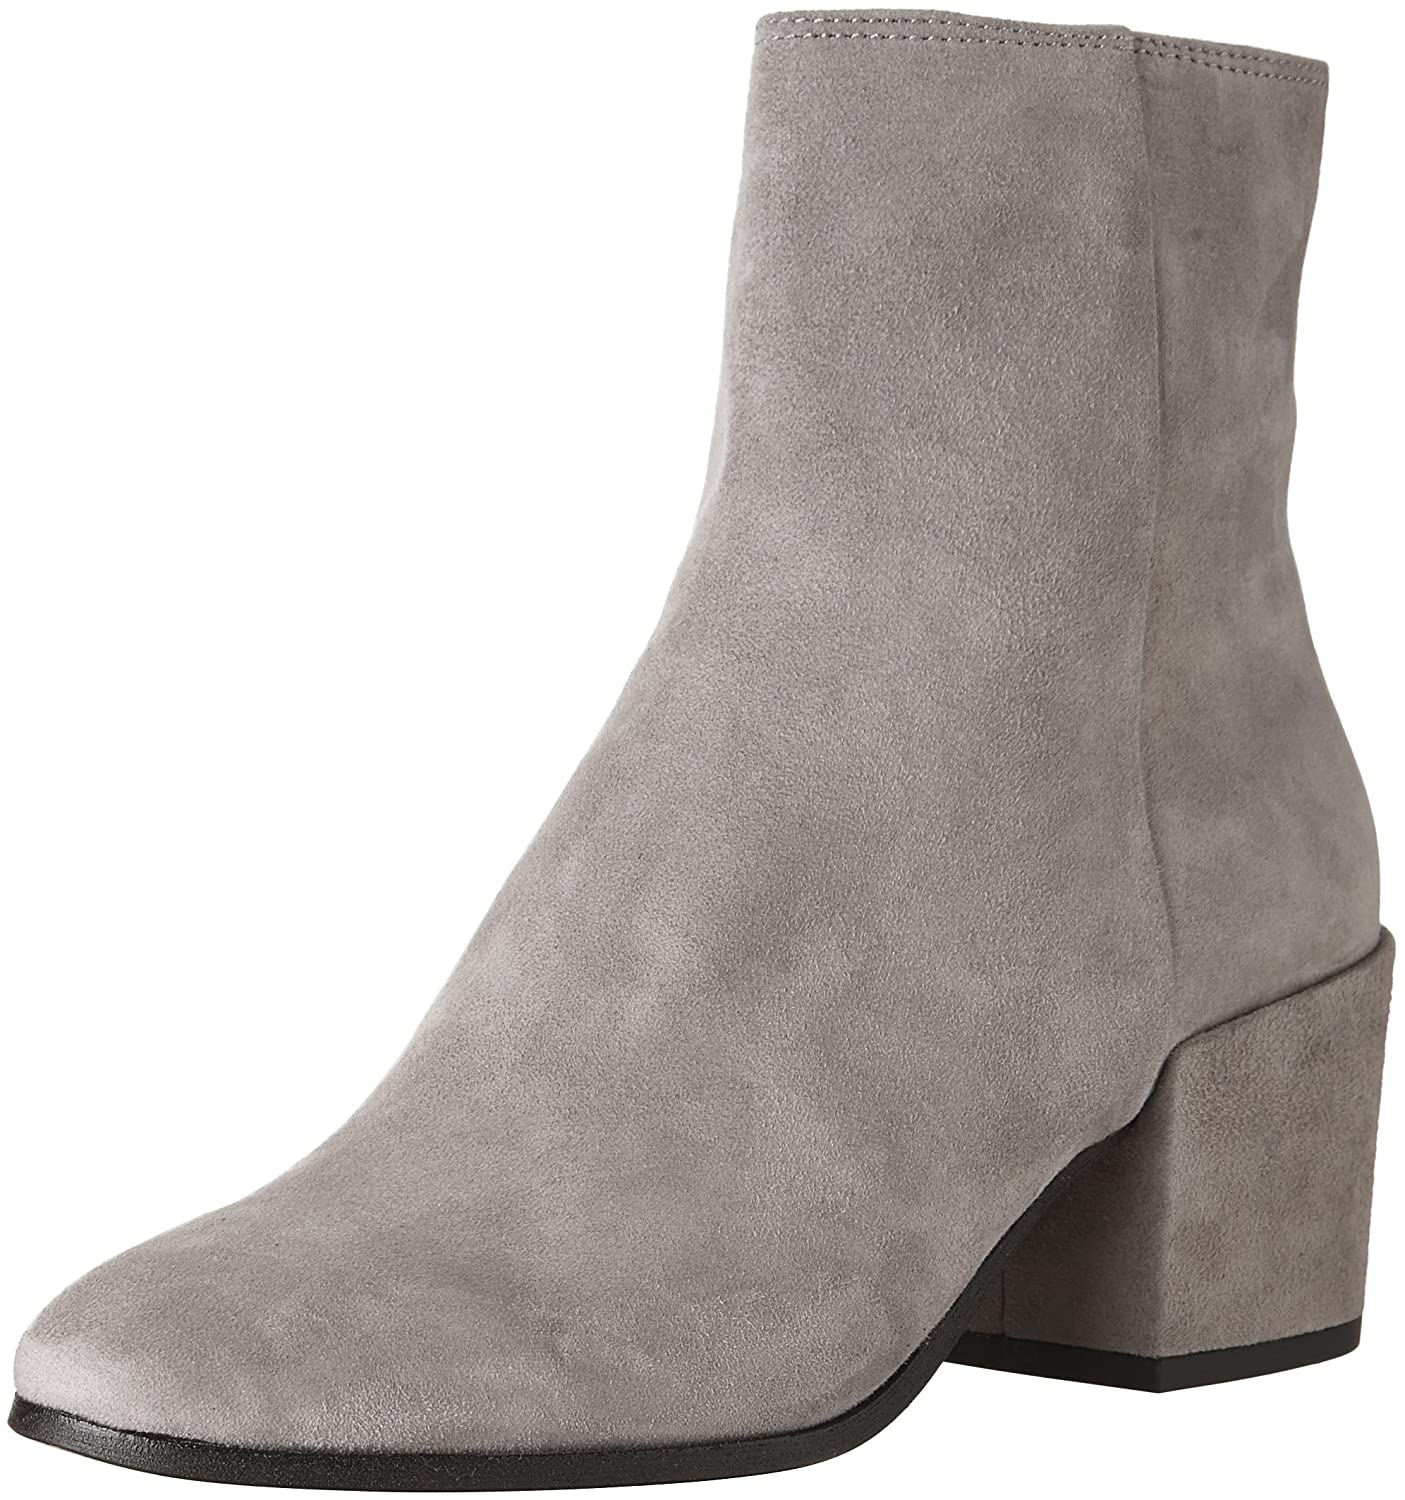 Dolce Vita Womens Maude Ankle Boot